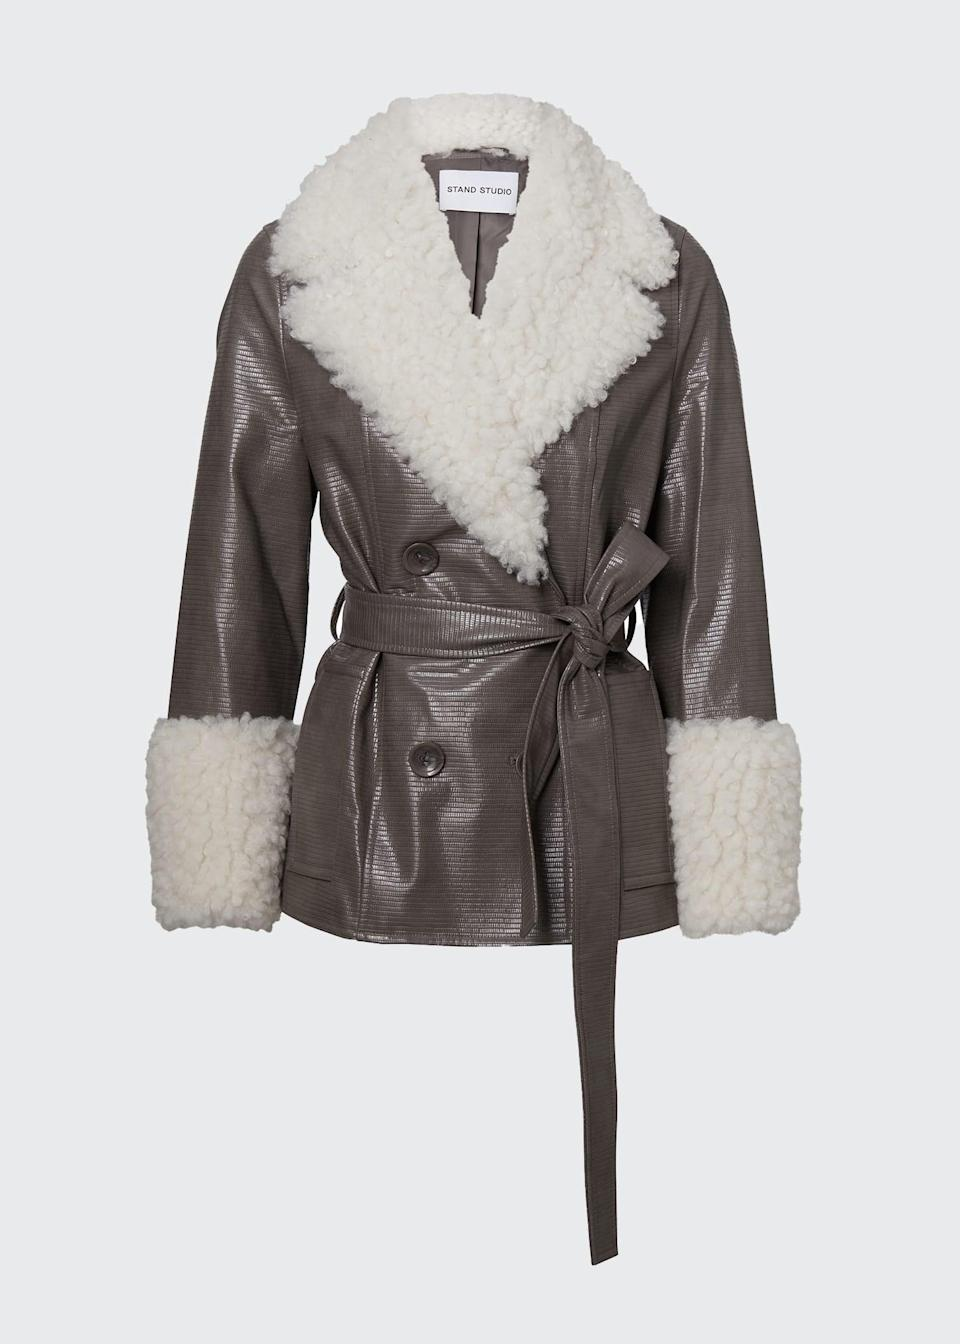 <p><span>Stand Studio Harmony Faux-Leather Jacket With Faux-Fur Trim</span> ($210)</p>